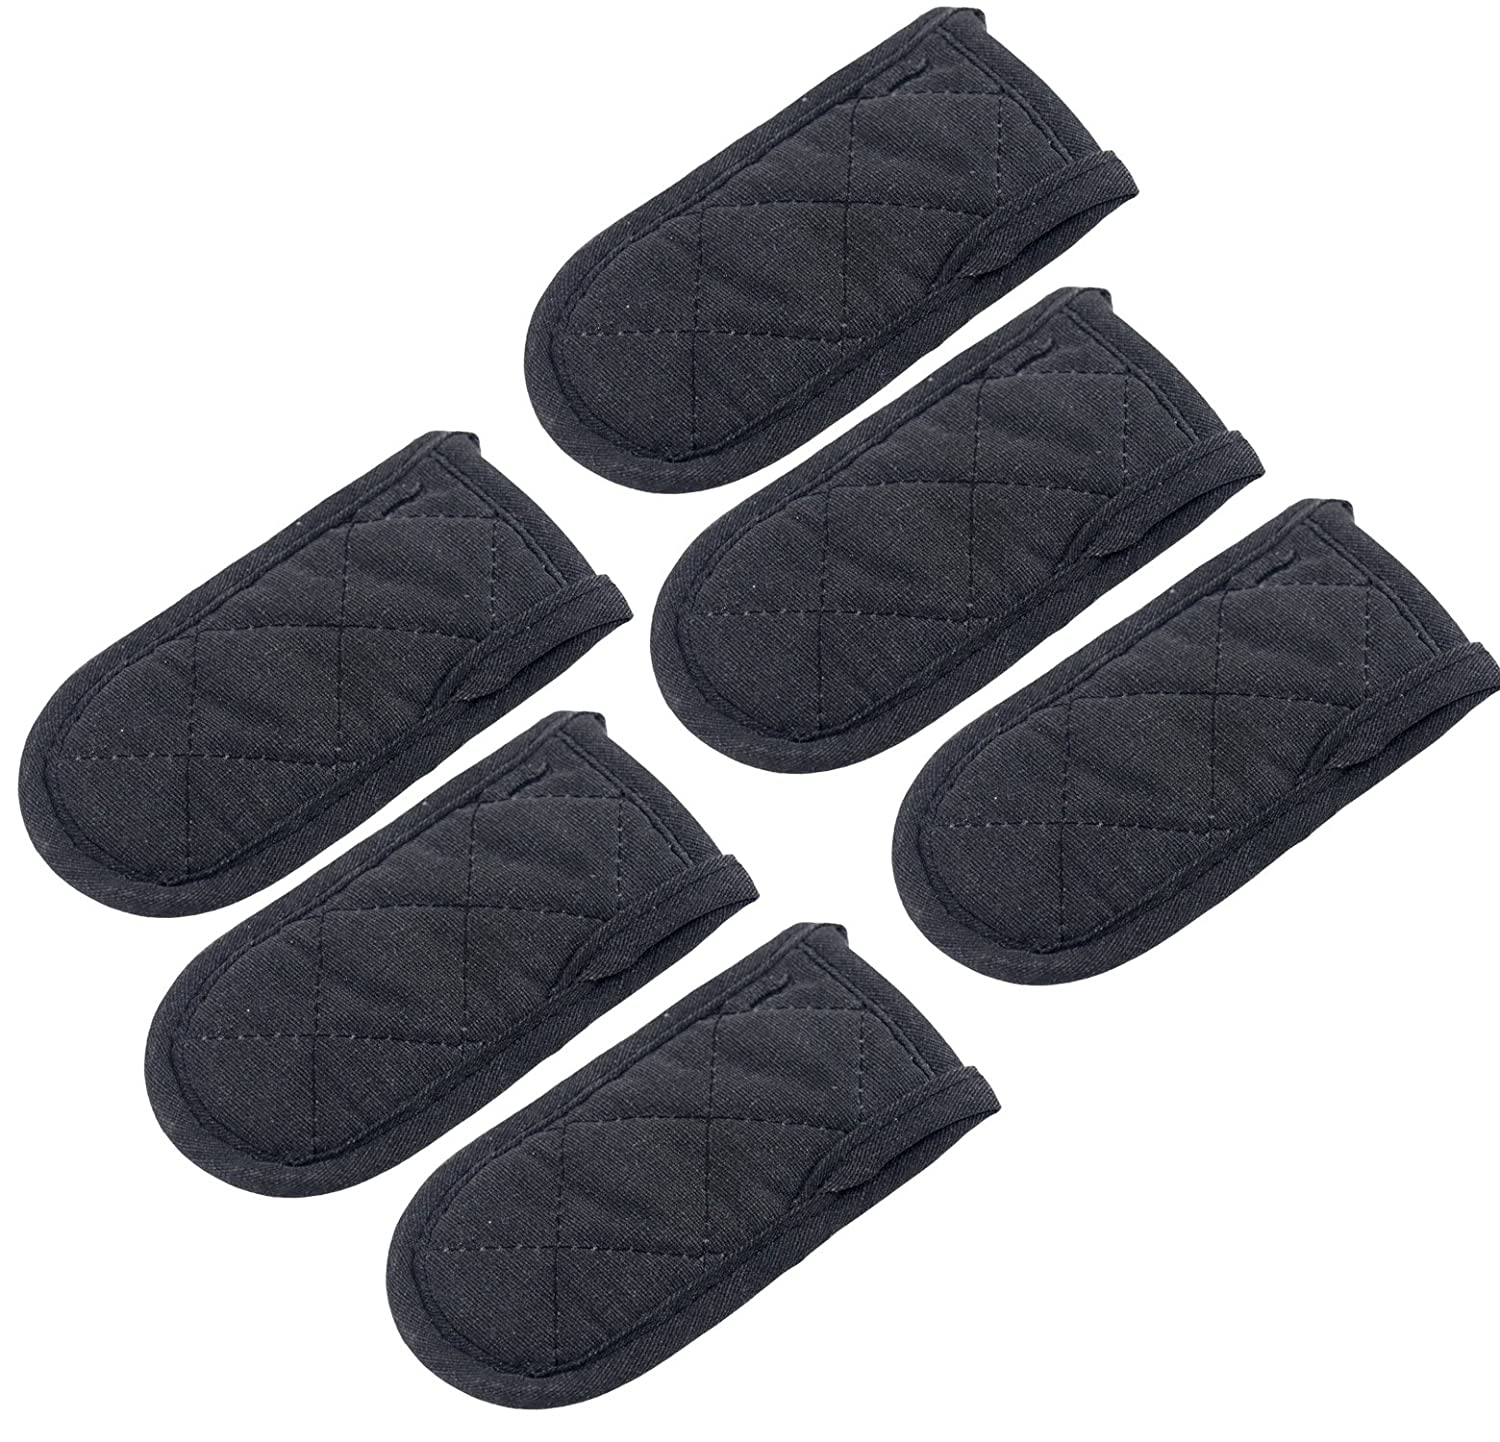 wellhouse Set of 10 Hot Handle Holders Mitts Cotton Potholders Sleeve Grip Handle Cover for Cookware Handles Black-10 Pack